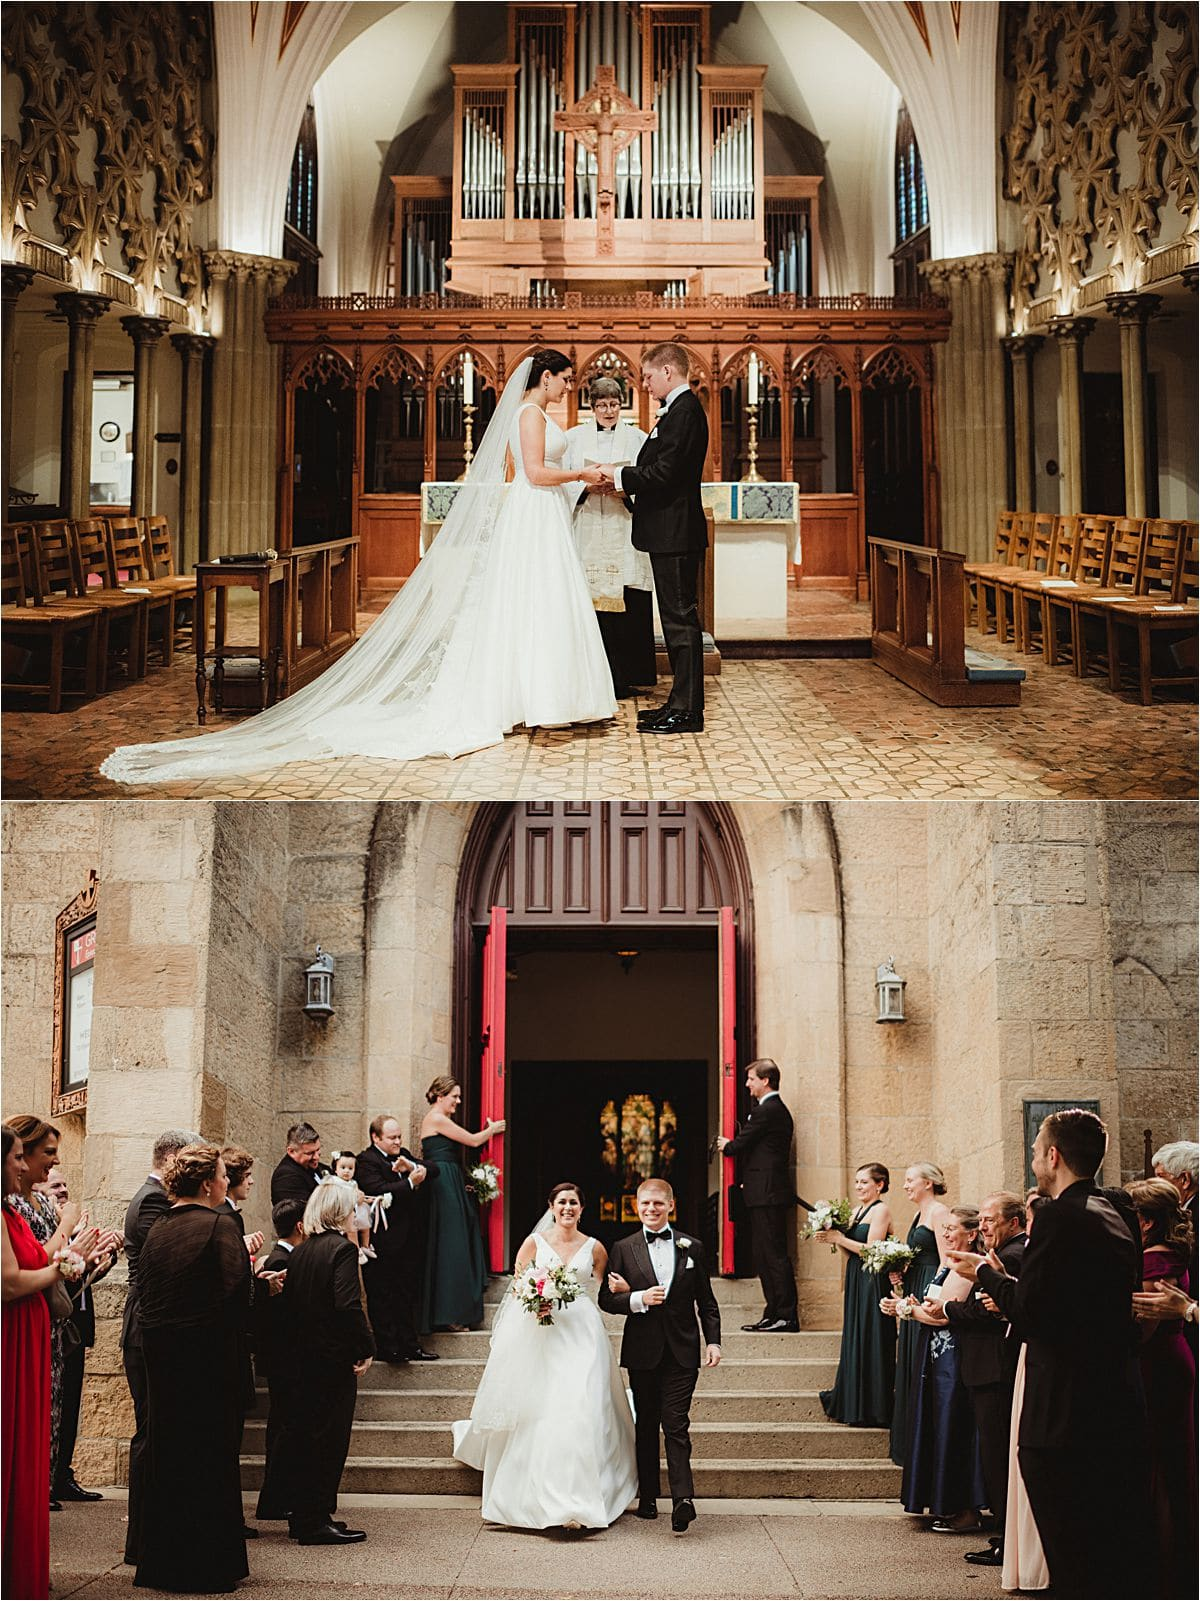 Urban Summer Wedding Church Ceremony